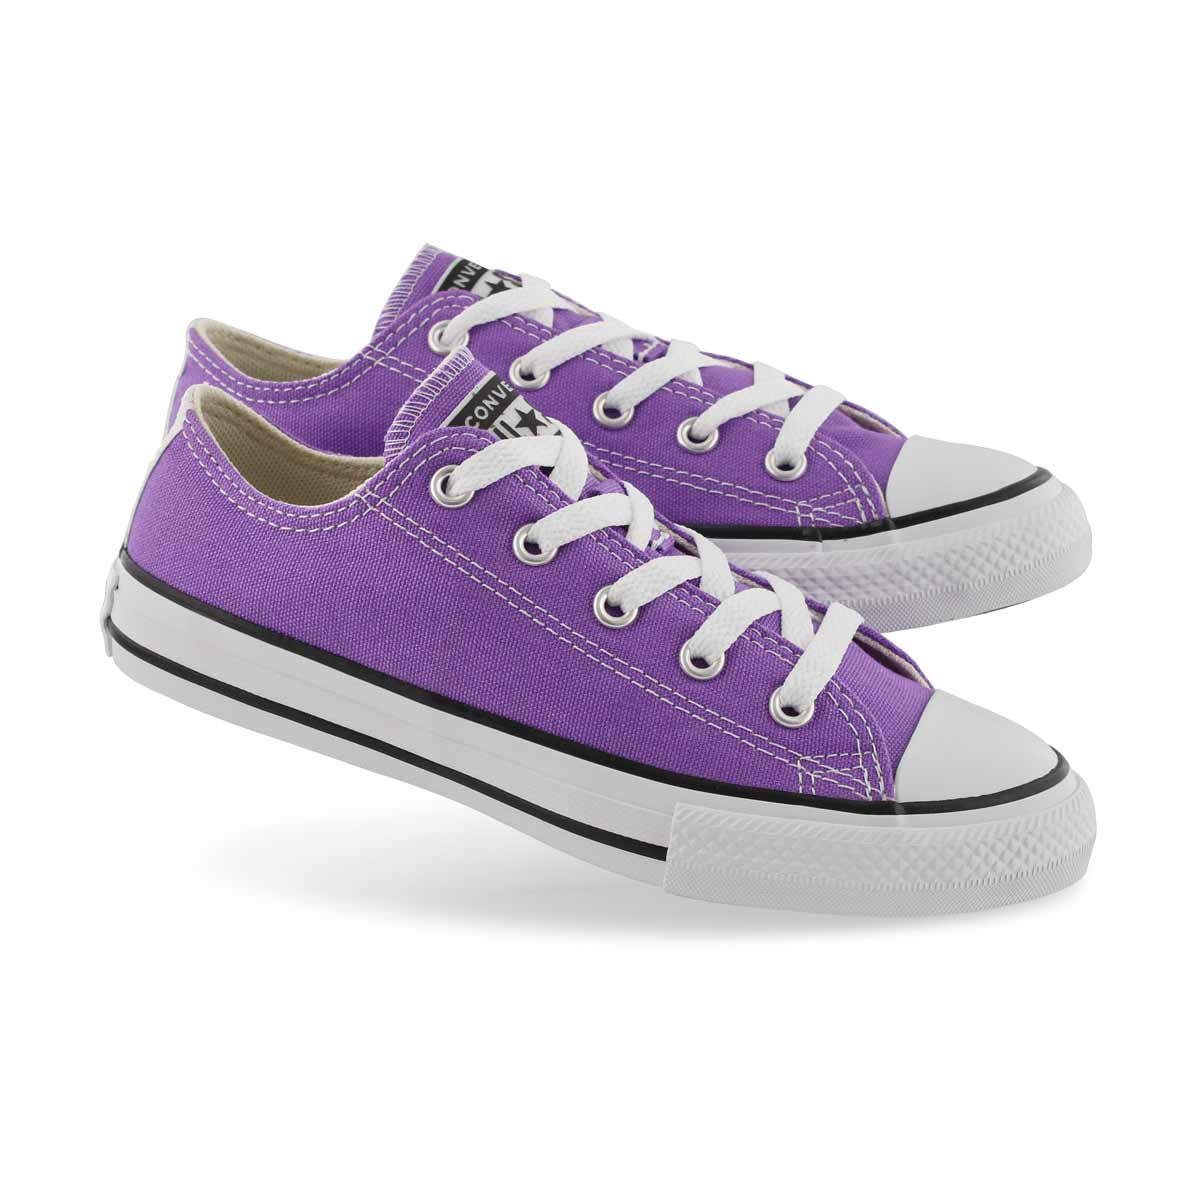 Girls' CT ALL STAR GALAXY DUST sneakers